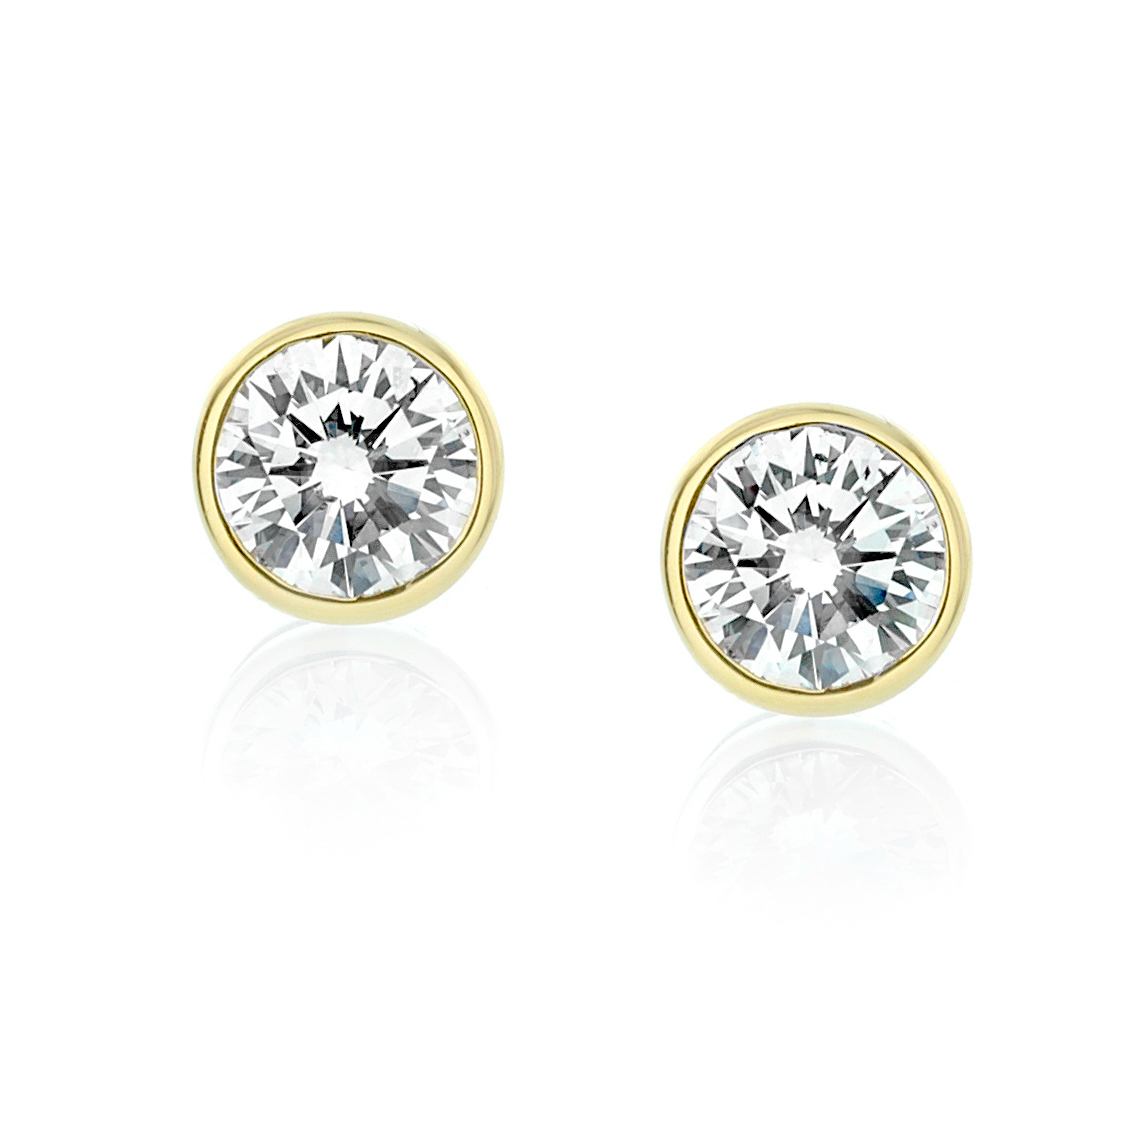 ltd gold width mm ruby bezel stud products white set earrings ogi